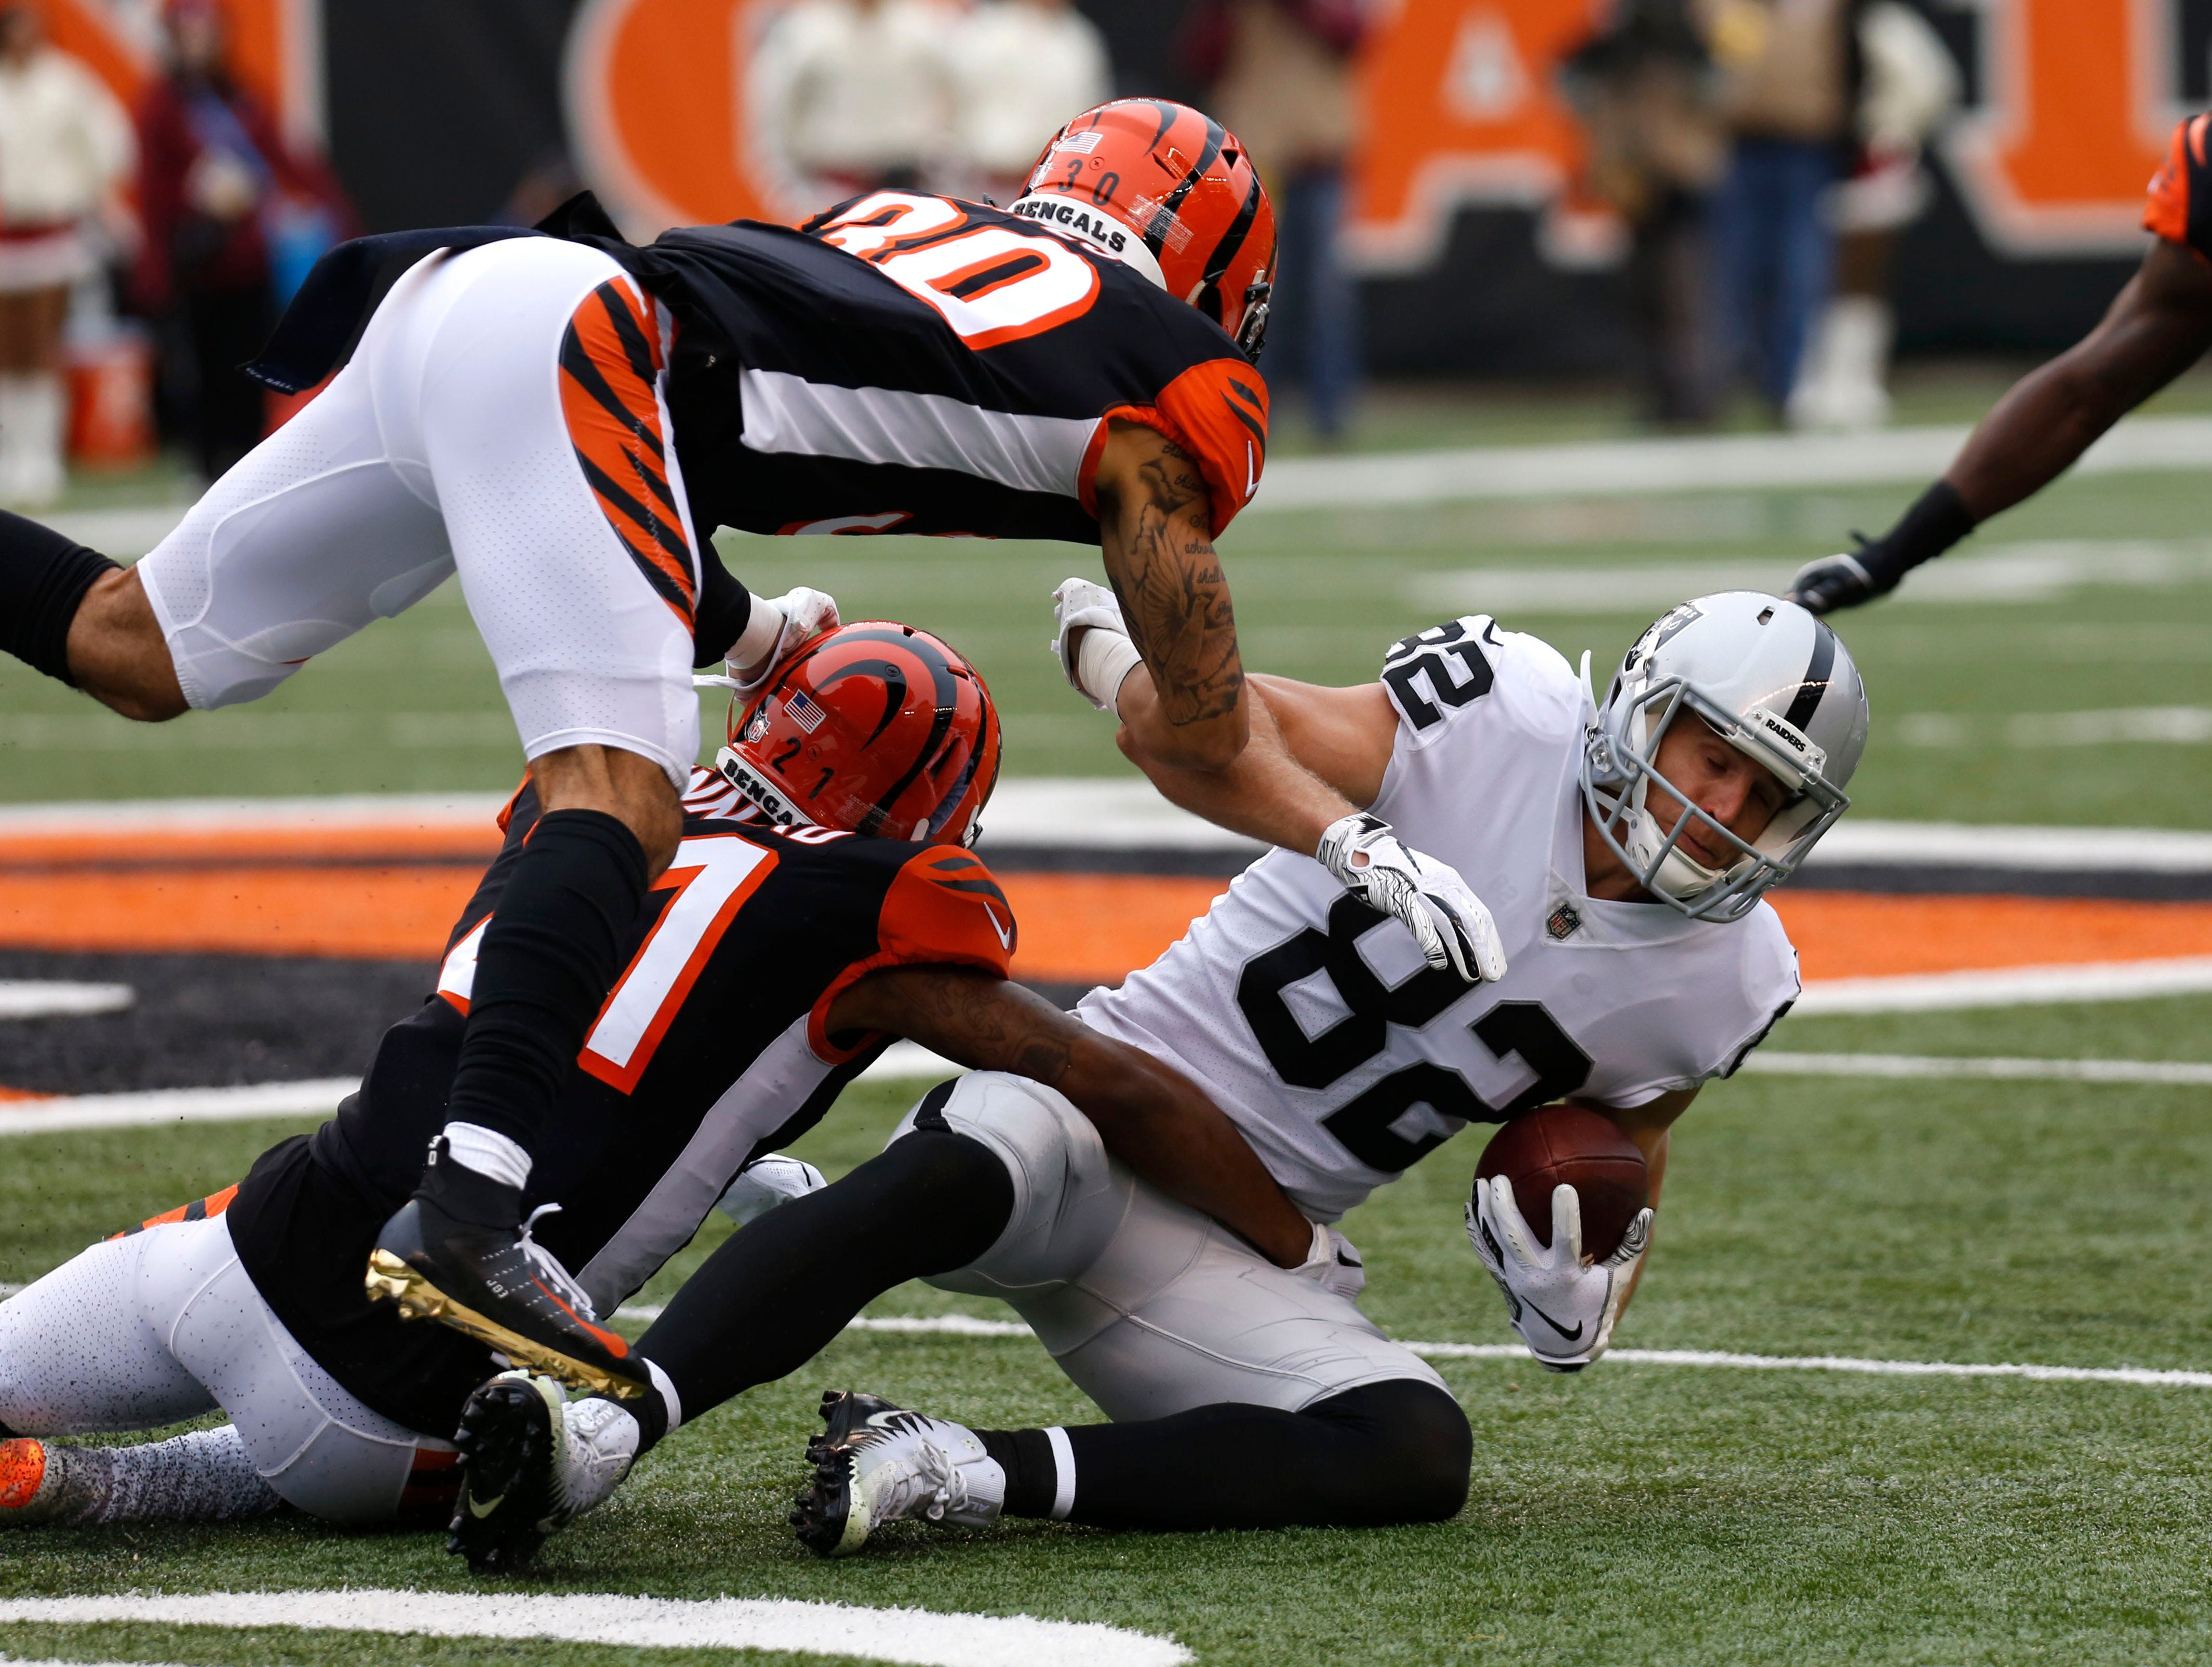 Dec 16, 2018; Cincinnati, OH, USA; Oakland Raiders wide receiver Jordy Nelson (82) is tackled by Cincinnati Bengals defensive back Darqueze Dennard (21) and free safety Jessie Bates (30) during the first half at Paul Brown Stadium. Mandatory Credit: David Kohl-USA TODAY Sports ORG XMIT: USATSI-381594 ORIG FILE ID:  20181216_cja_bk2_092.JPG